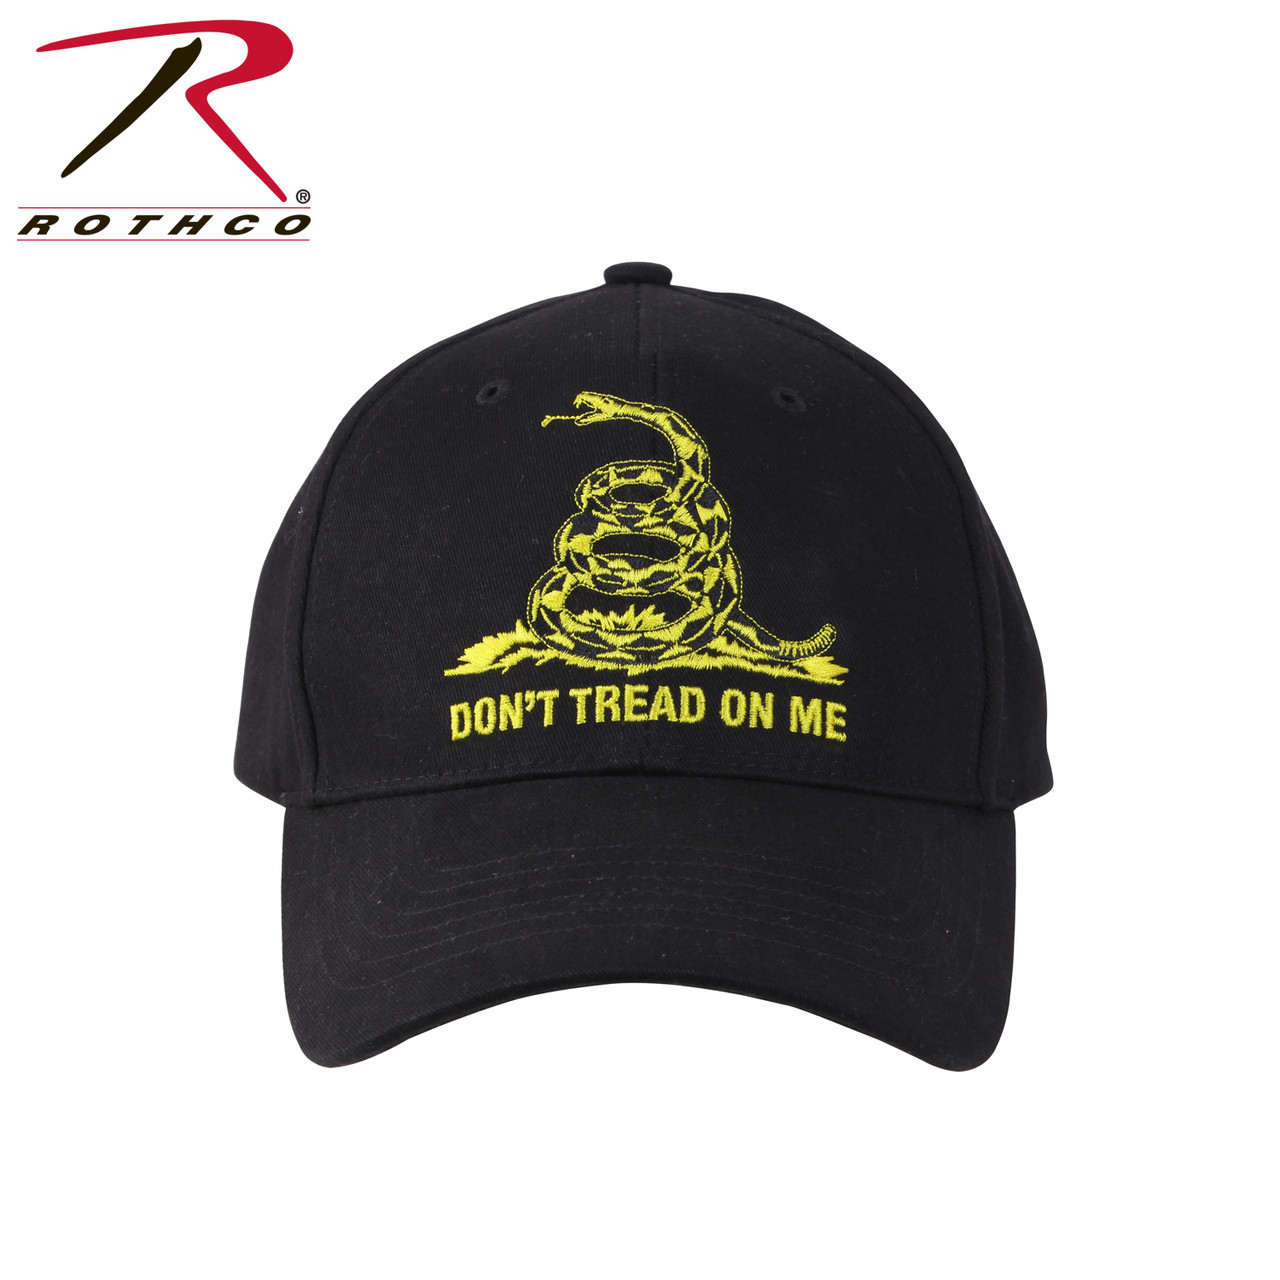 a5bfe823 ... Rothco Don't Tread On Me Low Profile Cap (Item #90280) ...